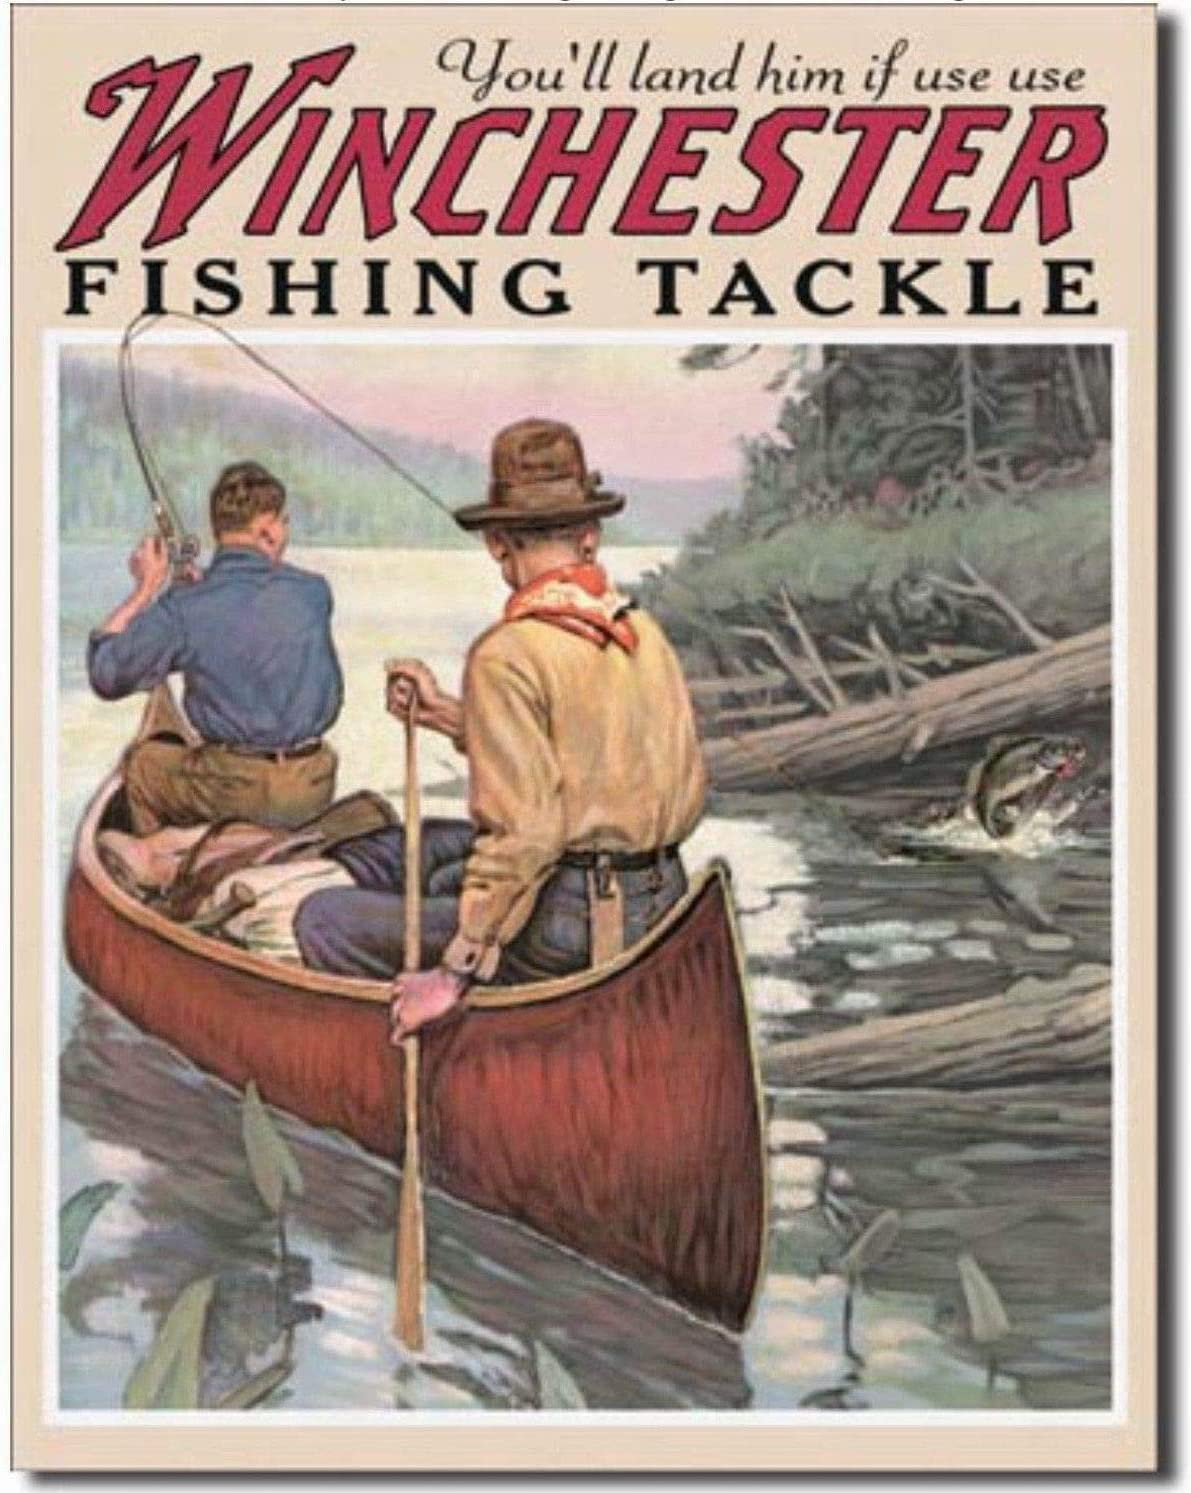 Ufcell 8x12 Vintage Retro Metal Tin Sign Winchester Fish and Tackle Hunting Fishing Home Wall Decor